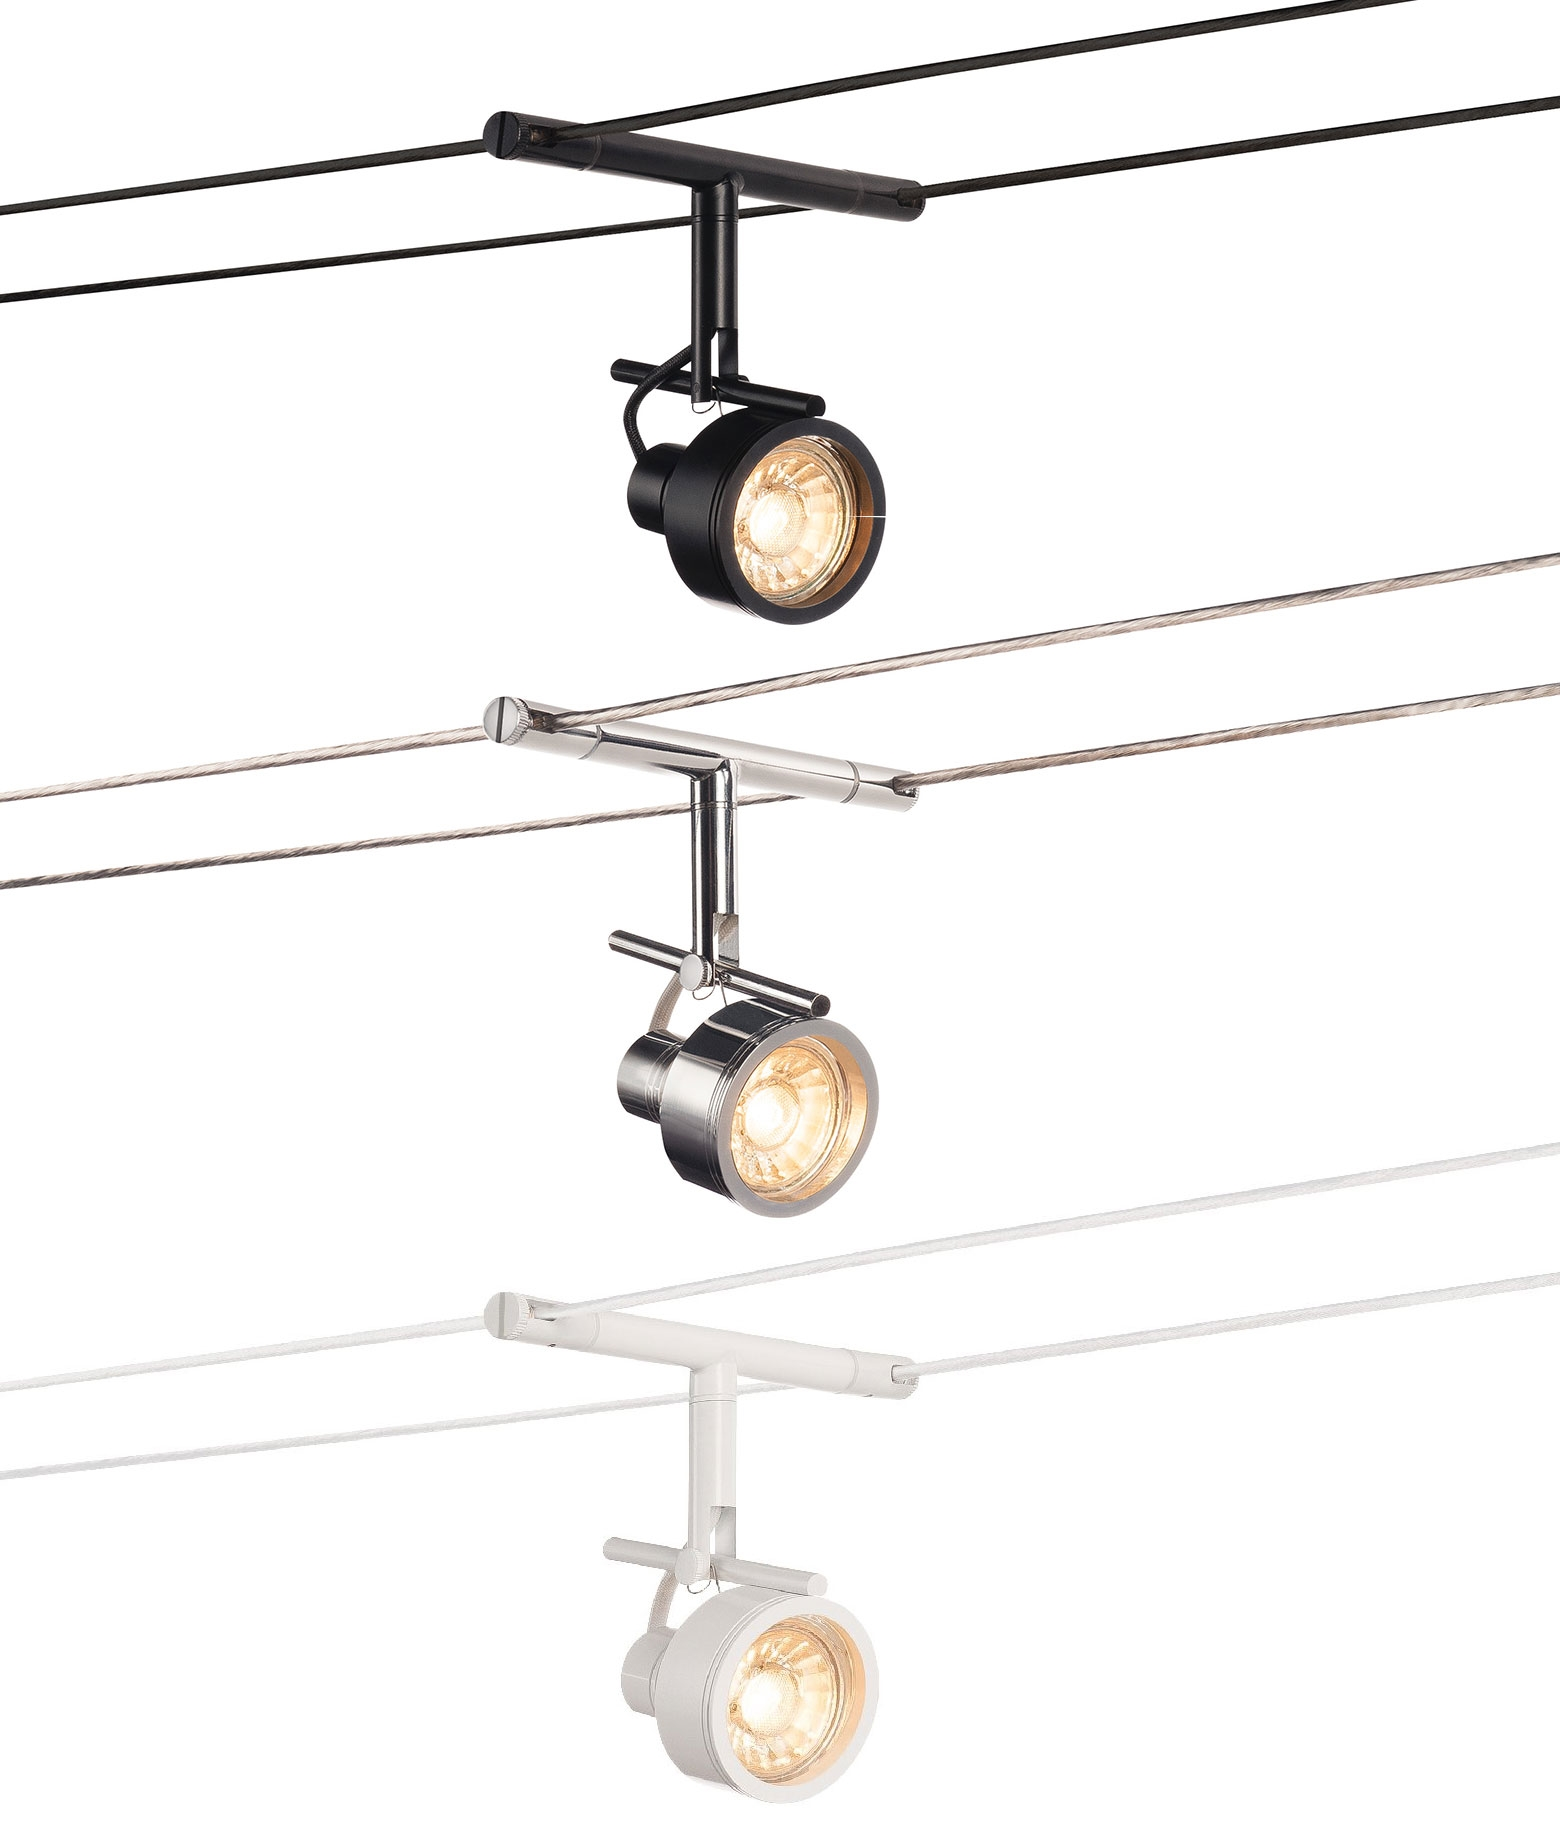 Tension Wire Adjustable Lampholder Available In Chrome